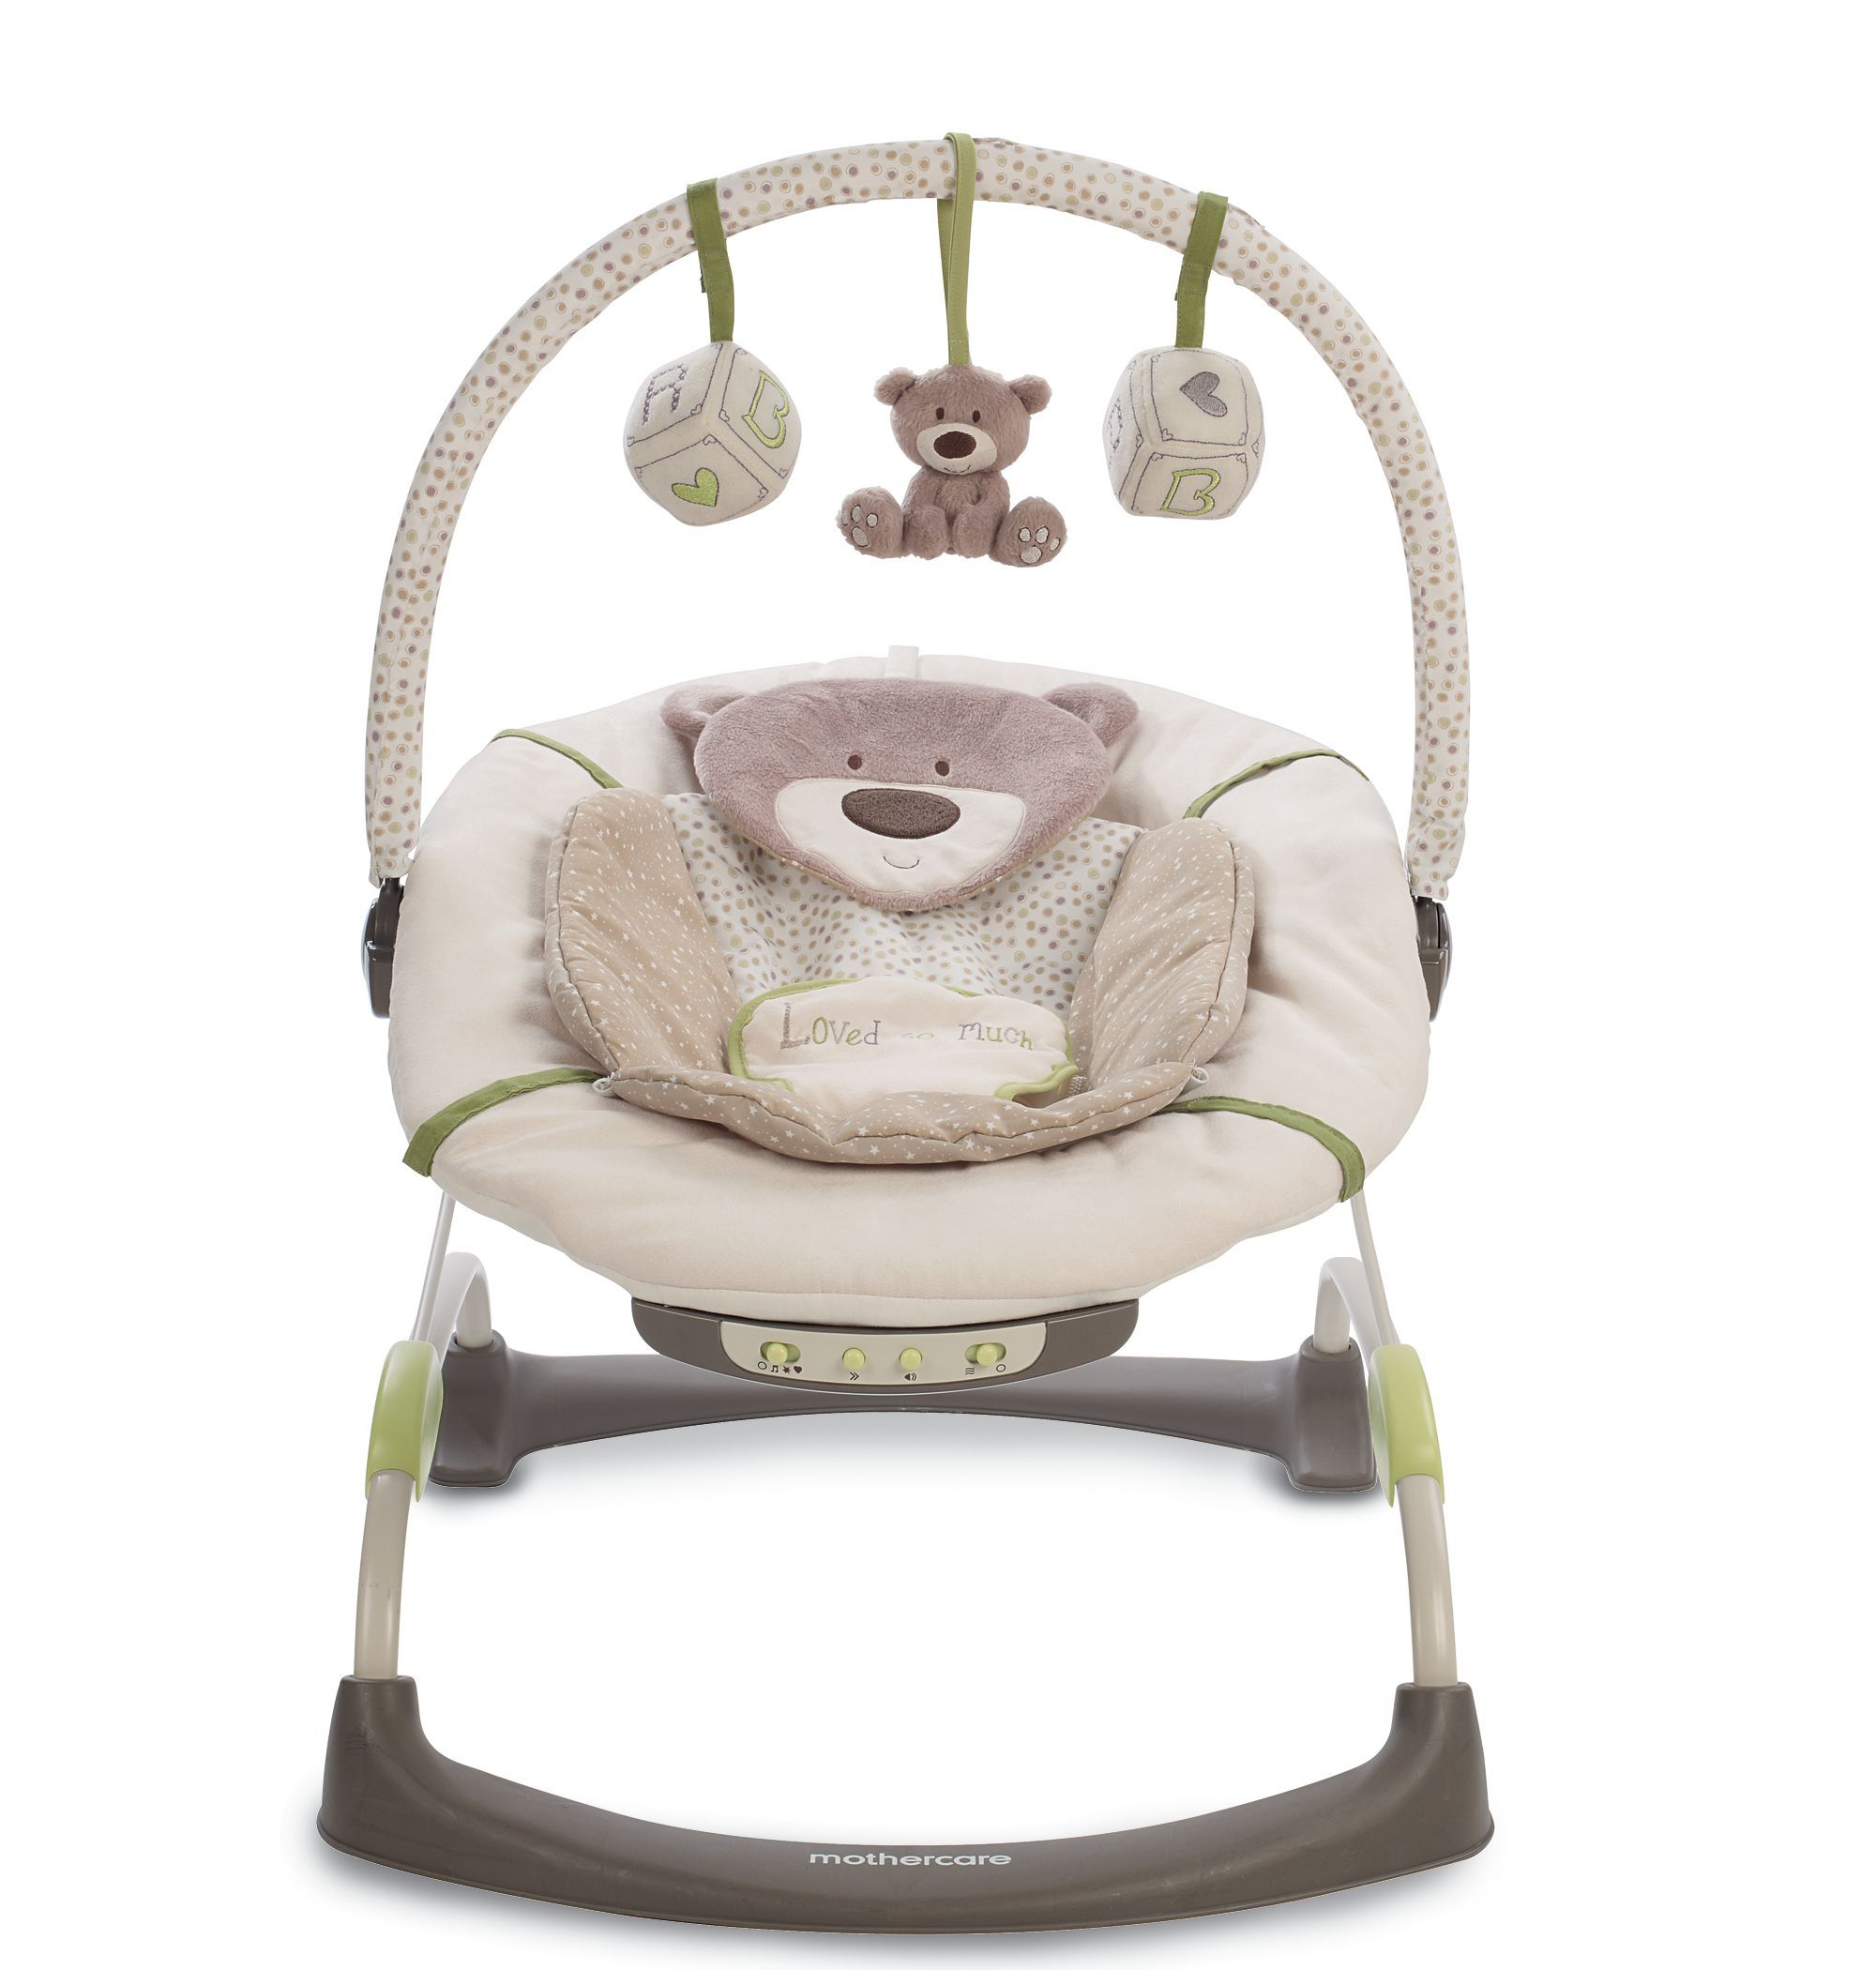 Baby Active Mothercare Moses Basket With Rocking Sound Great Varieties Bassinets & Cradles